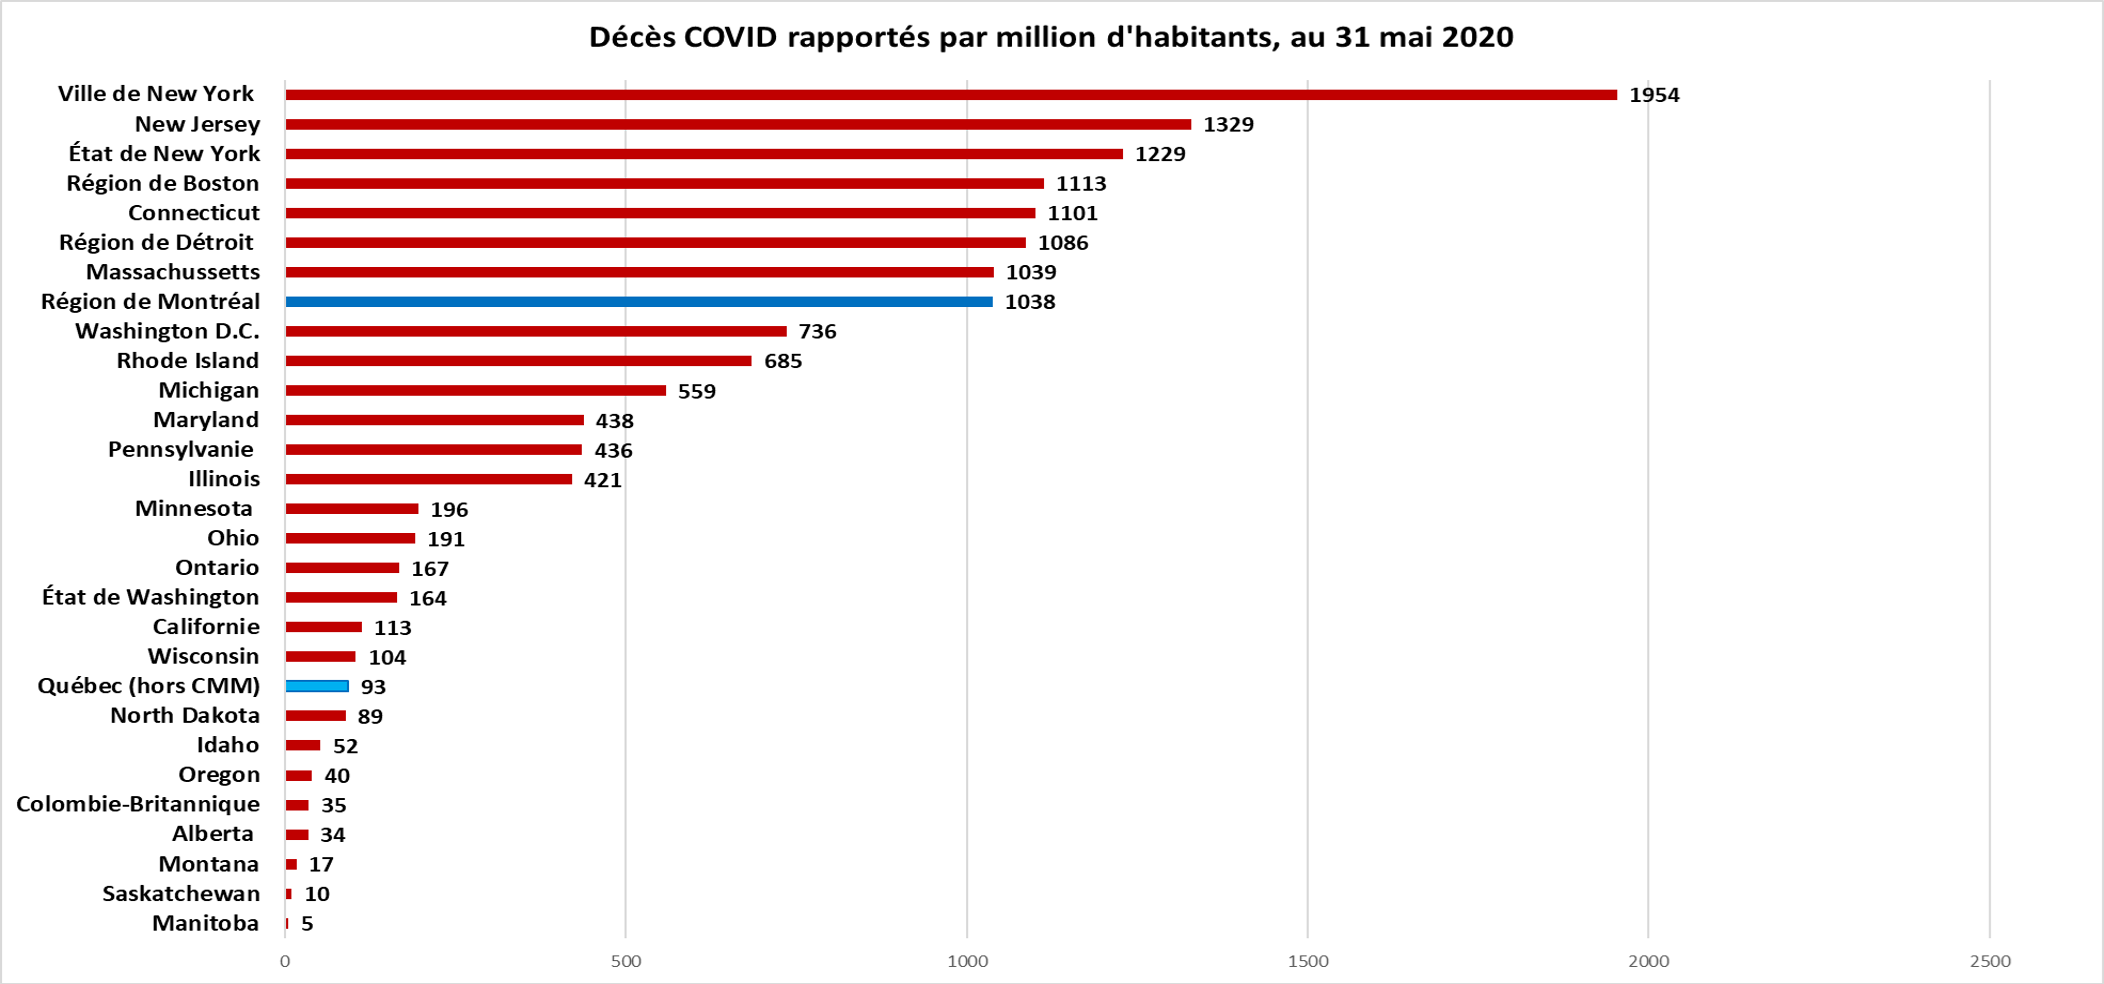 Décès COVID-19 par million d'habitants